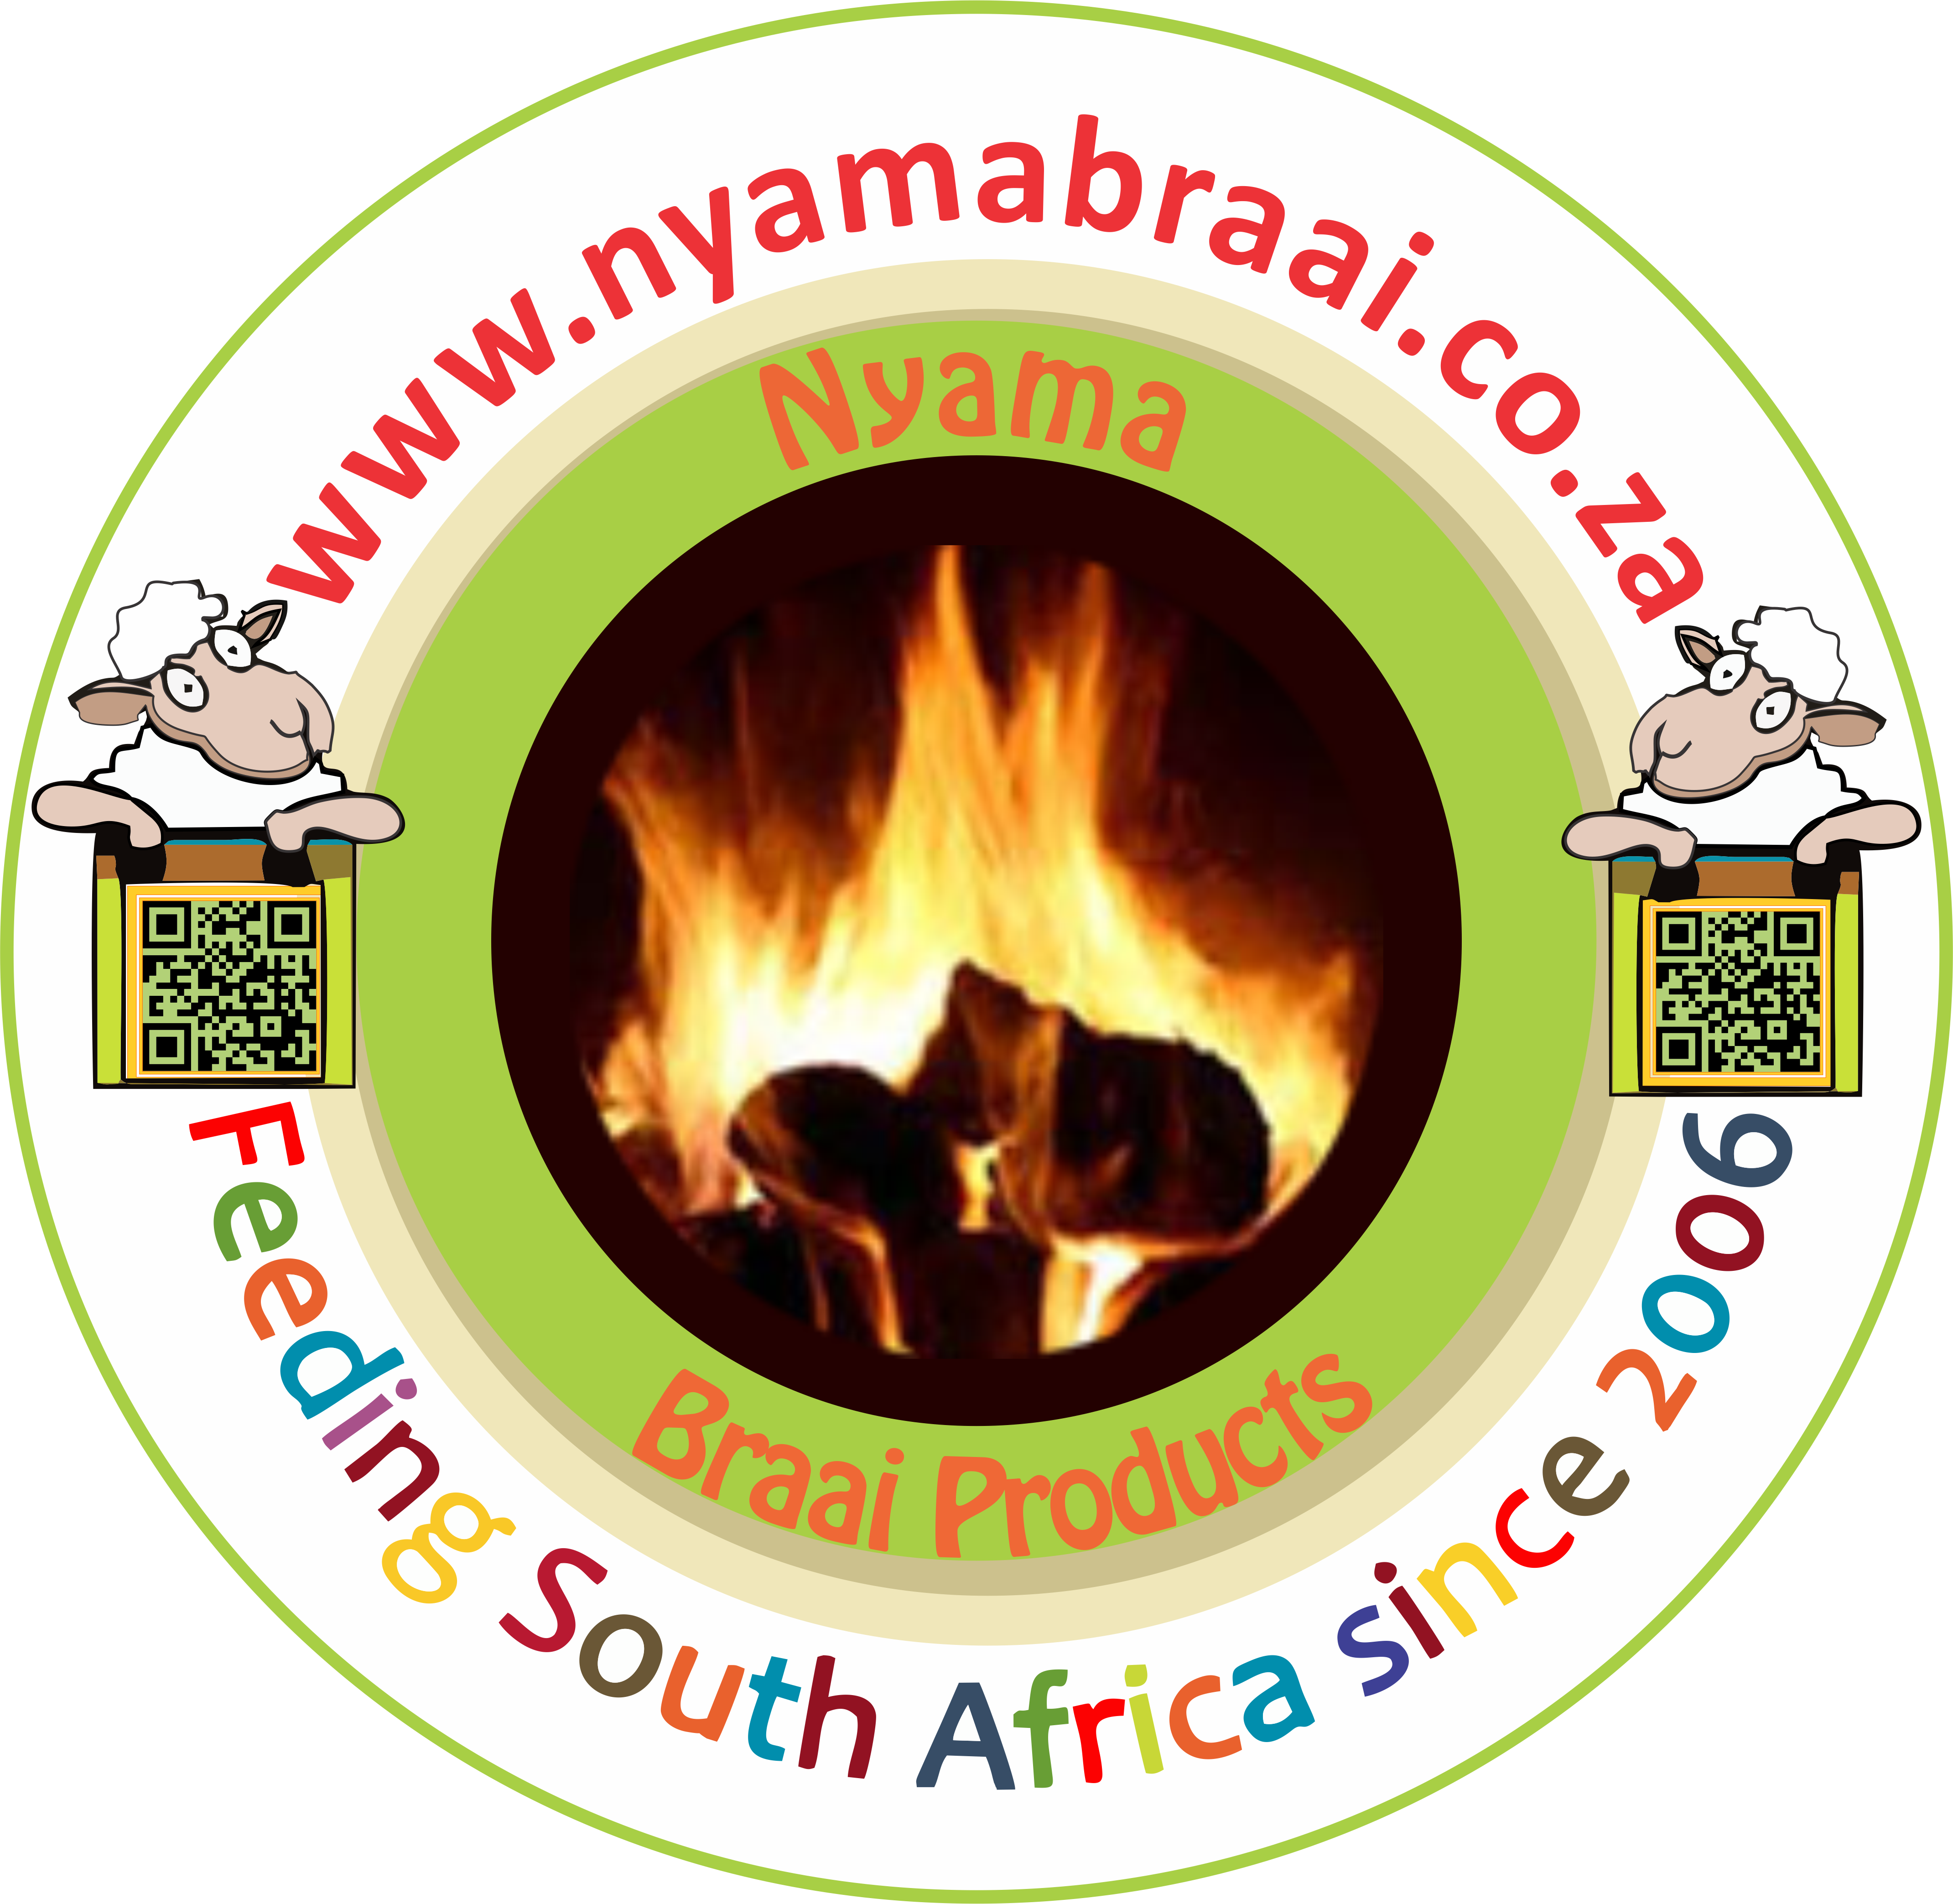 Nyama Braai – Feeding South Africa since 2006